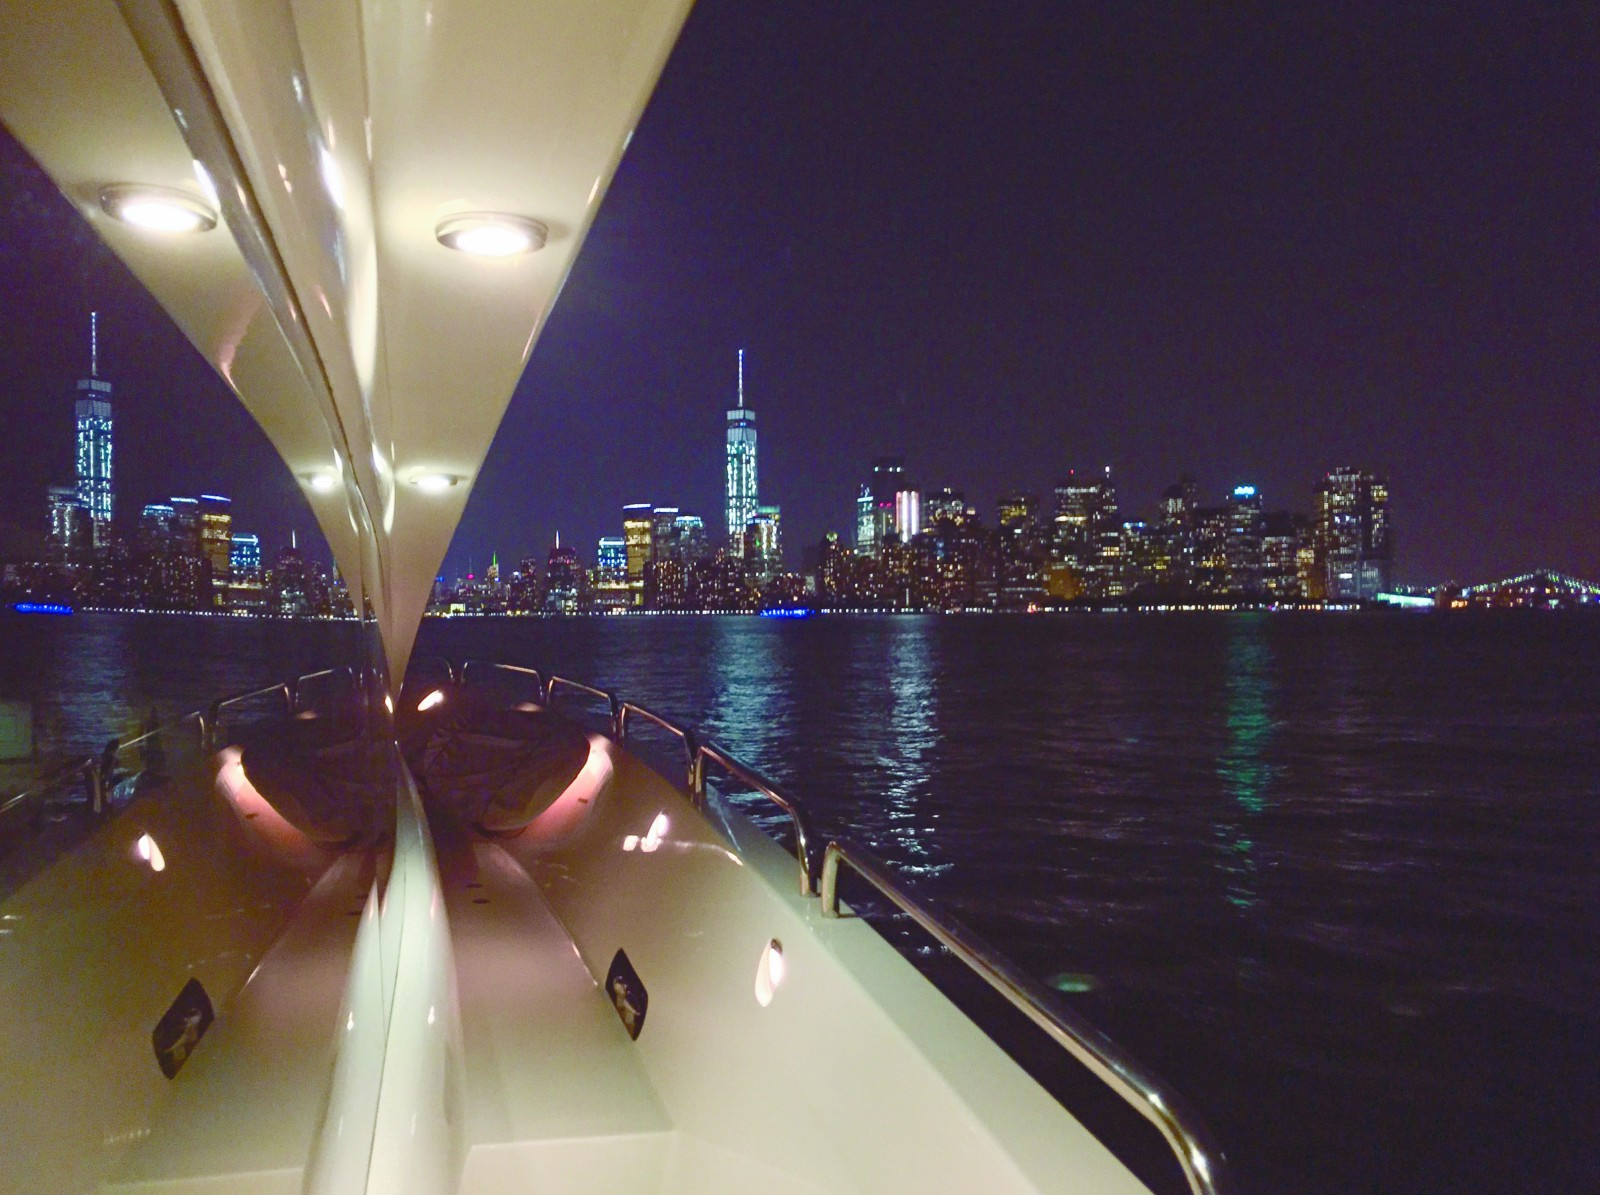 """Capt James Pat Riherd stepped away from the helm of the 116-foot Lazzara M/Y Quisisana this summer as they were leaving the Statue of Liberty, making way for Manhattan, to snap this shot on his iPhone 6.  """"I couldn't resist trying to capture the beauty of Manhattan at night,"""" he said.  Mission accomplished."""